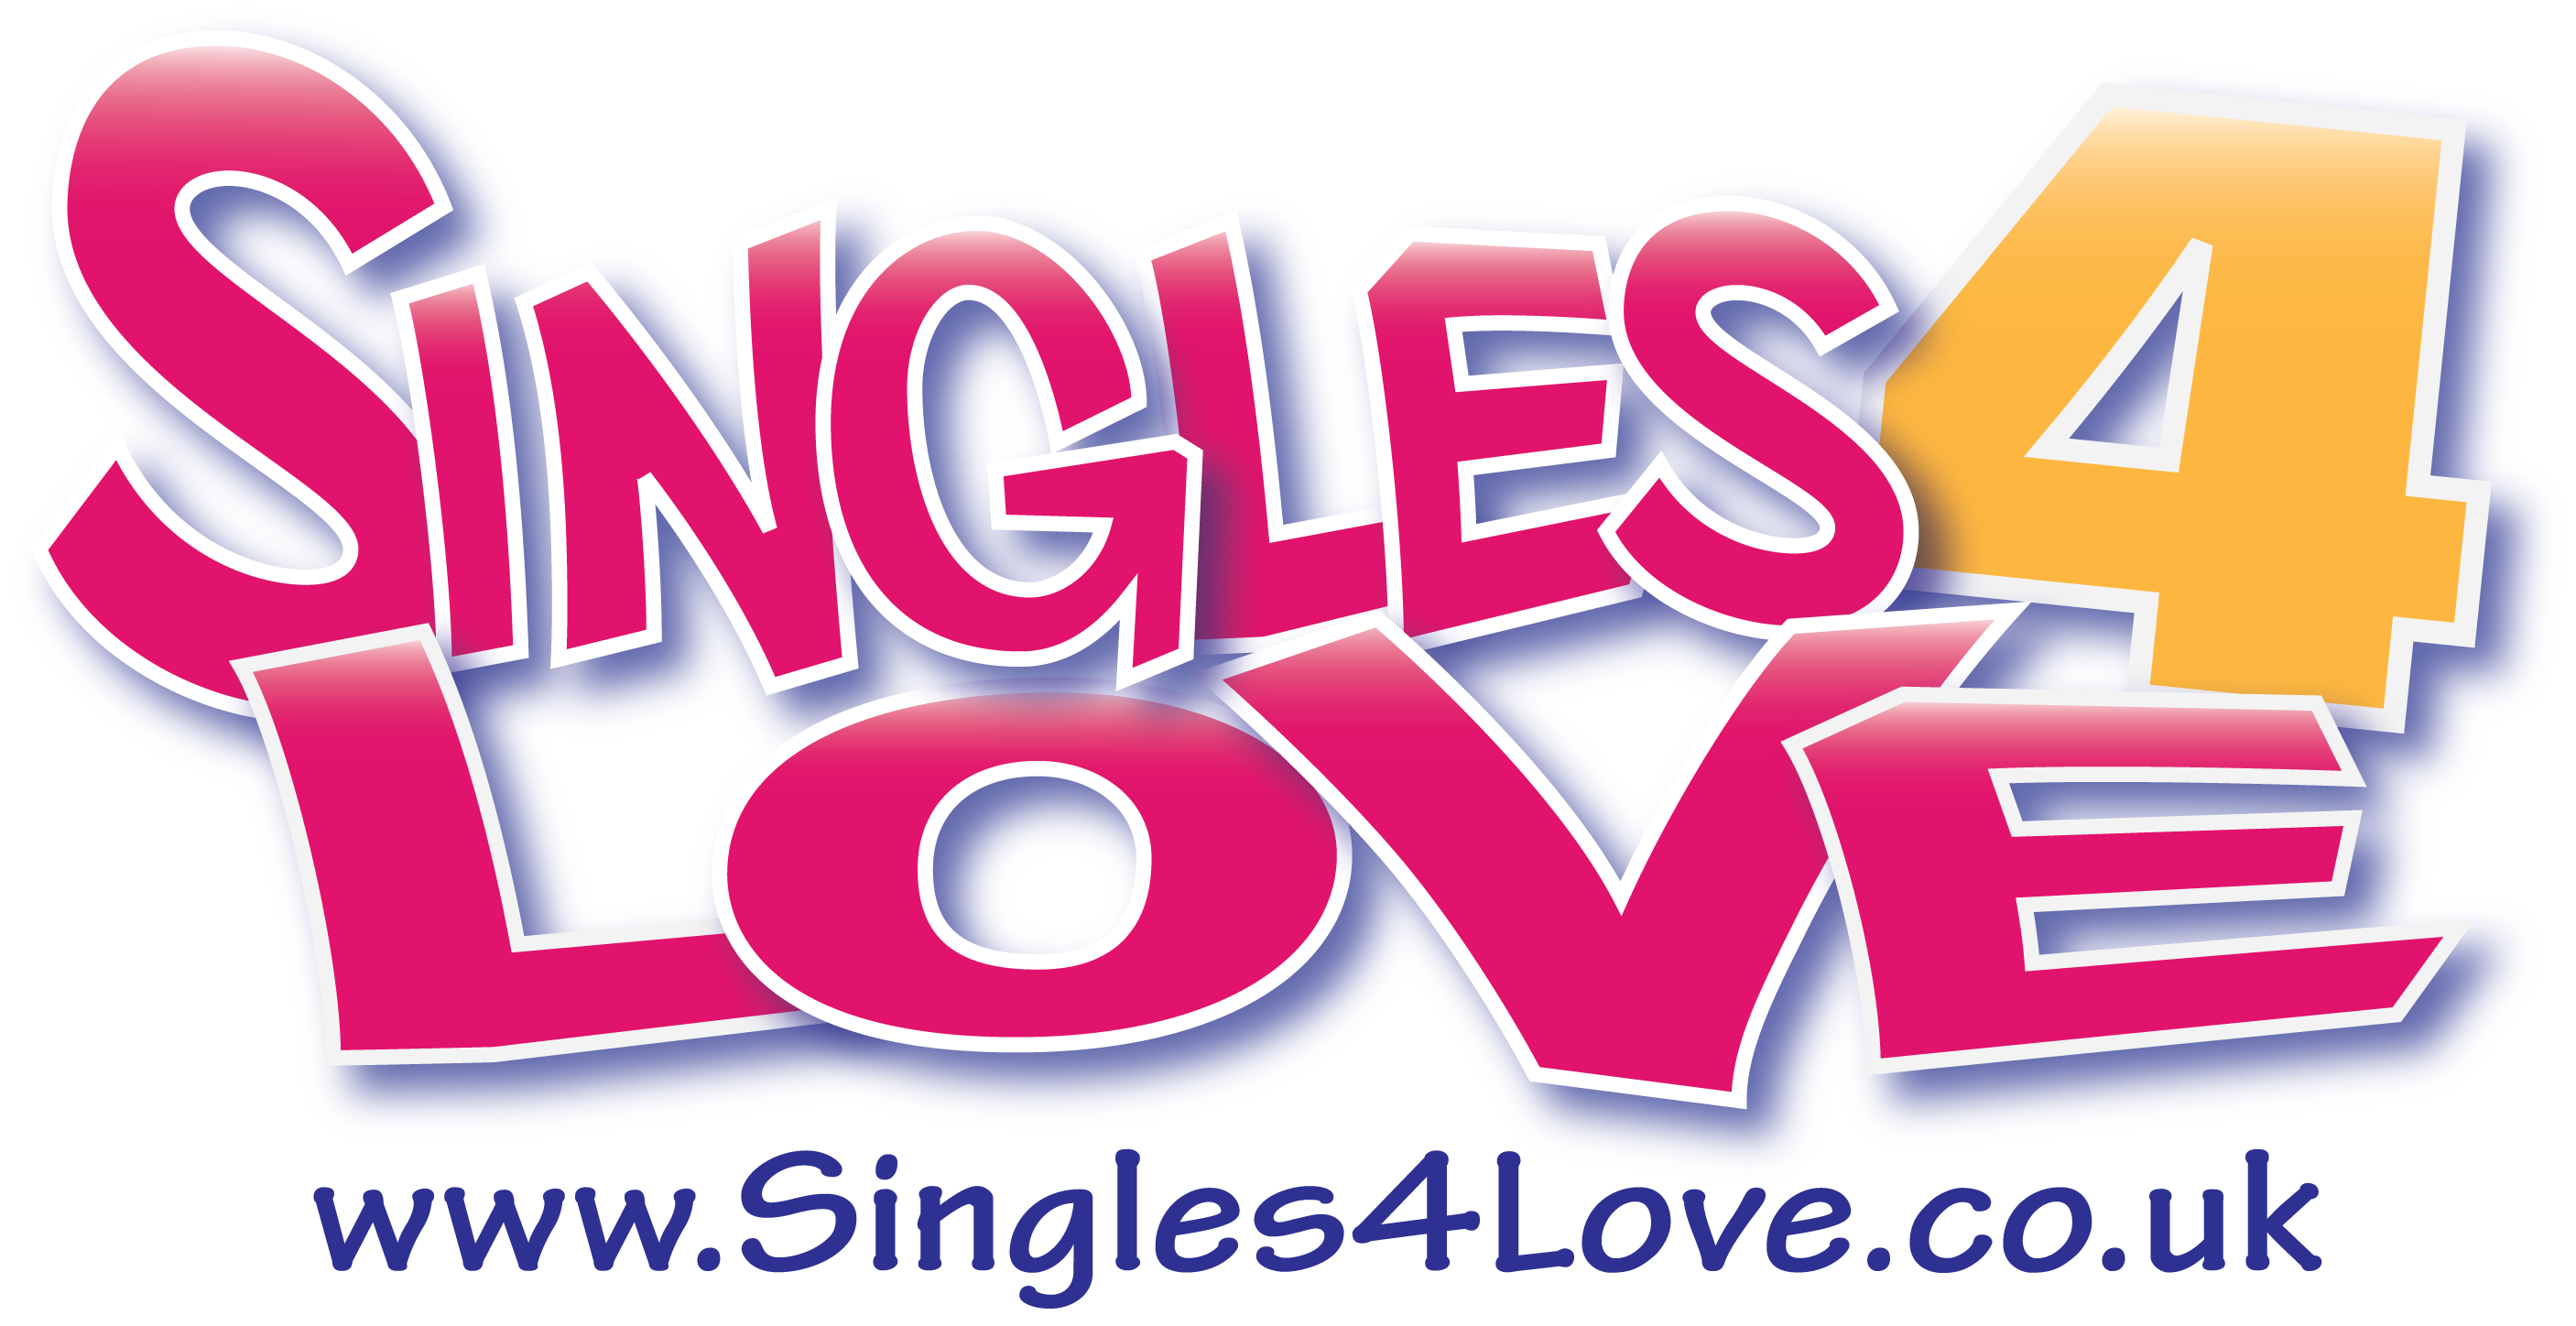 Free online dating and chat for singles. | Free online